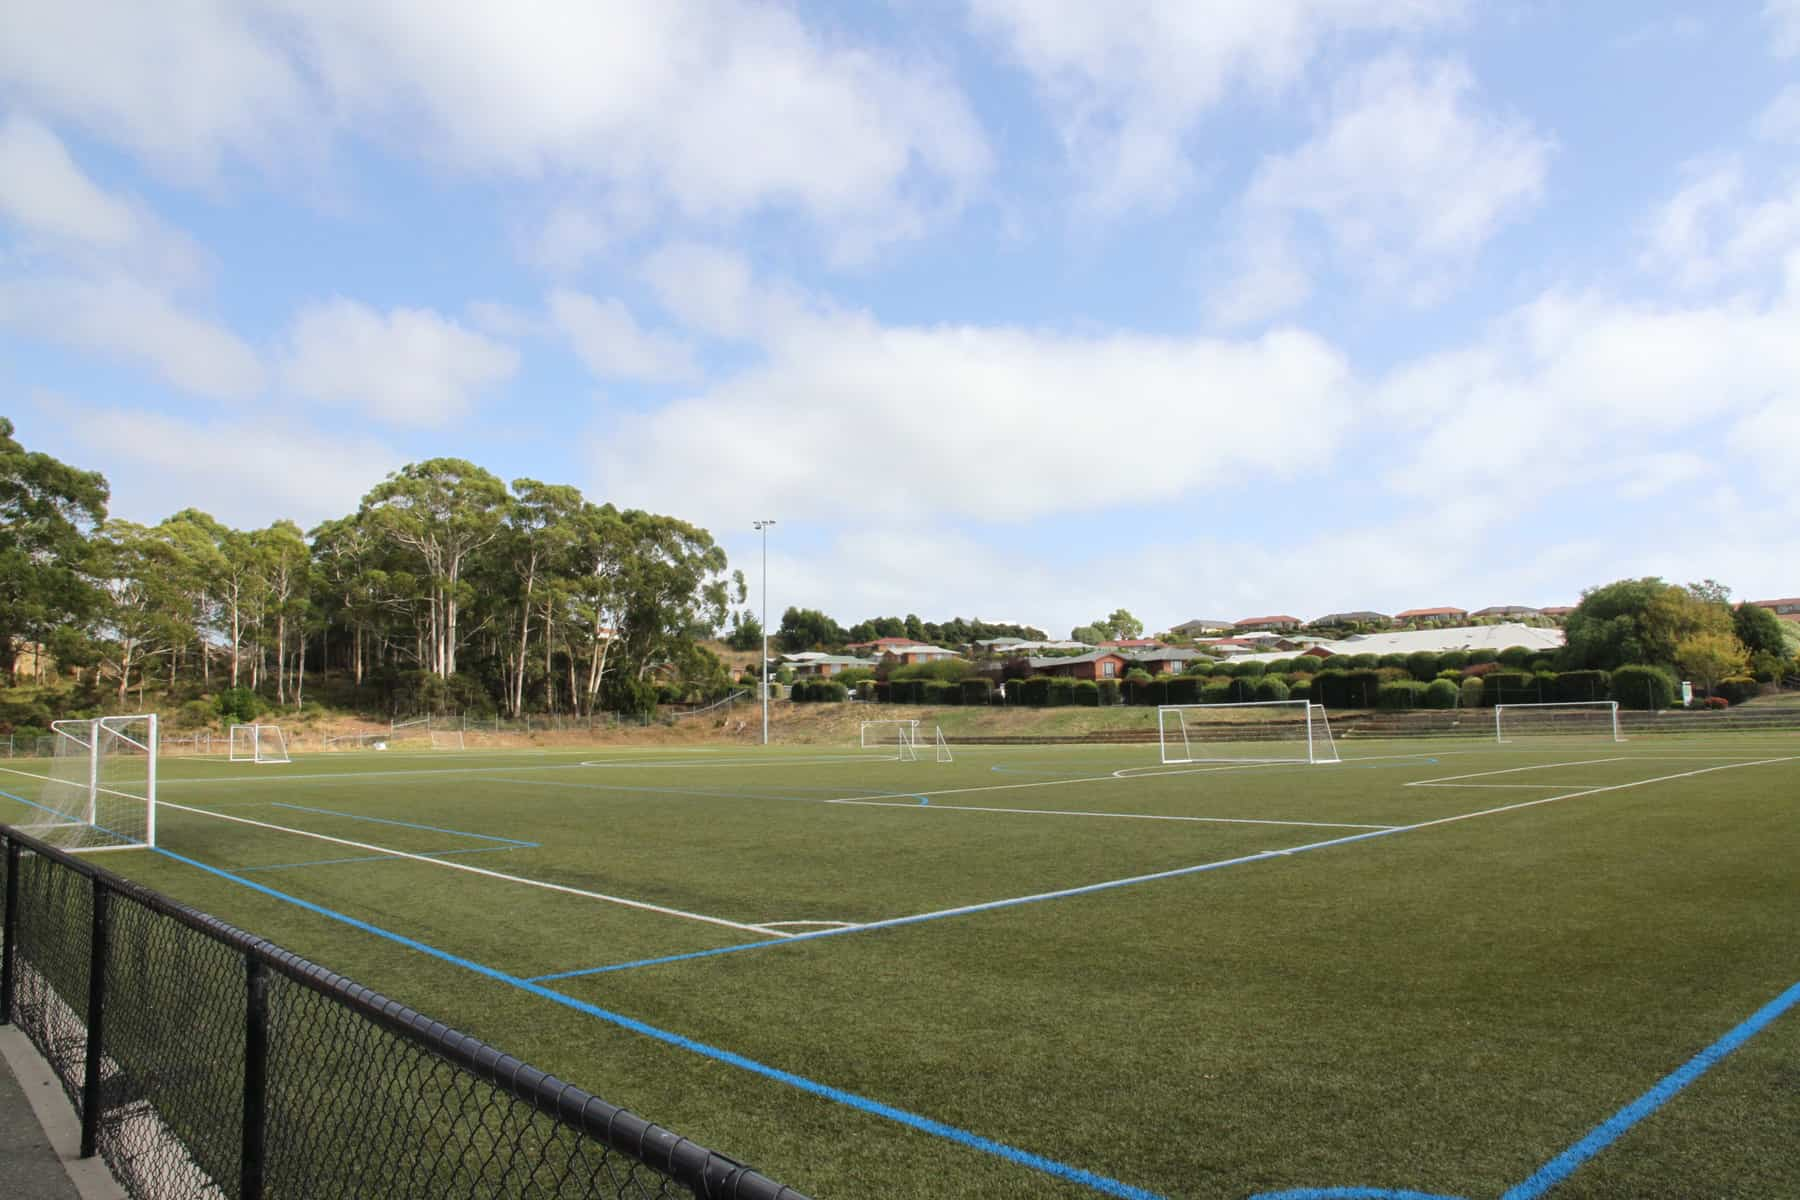 Council seeks EOI for Sports Infrastructure Master Plan Working Group